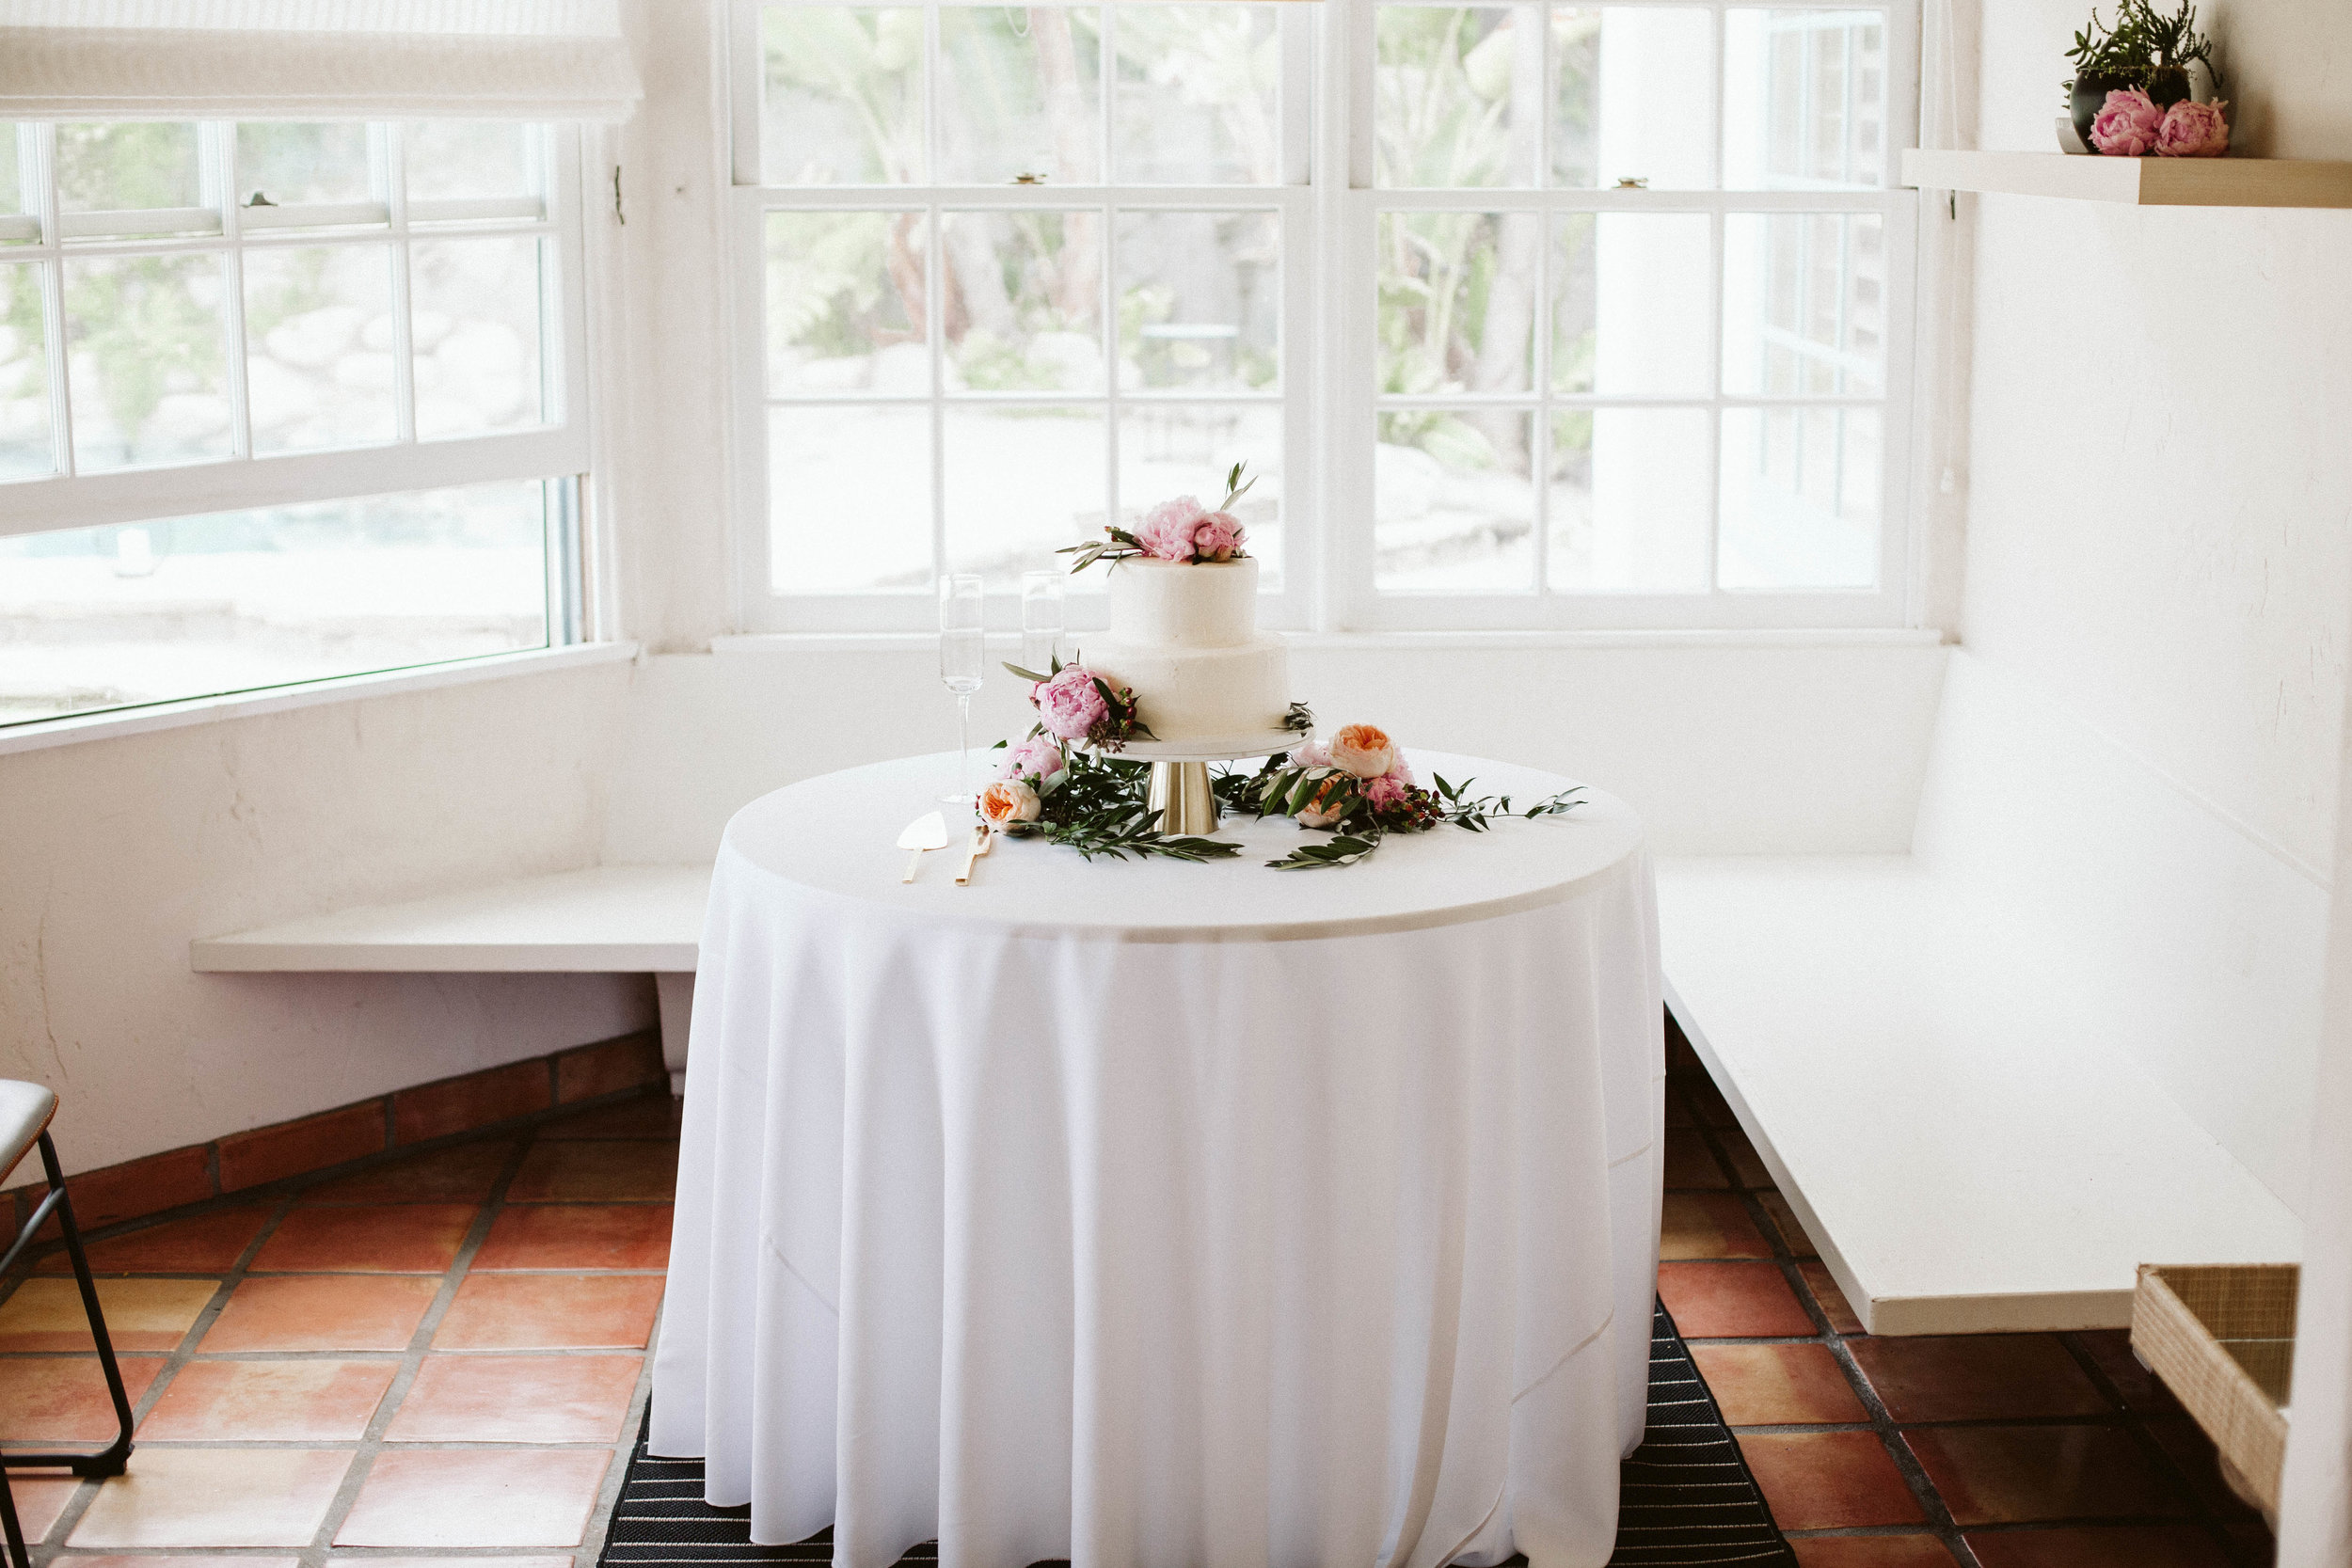 Tessa & Xavier's cake-Photo: Jessica Caballero Photo